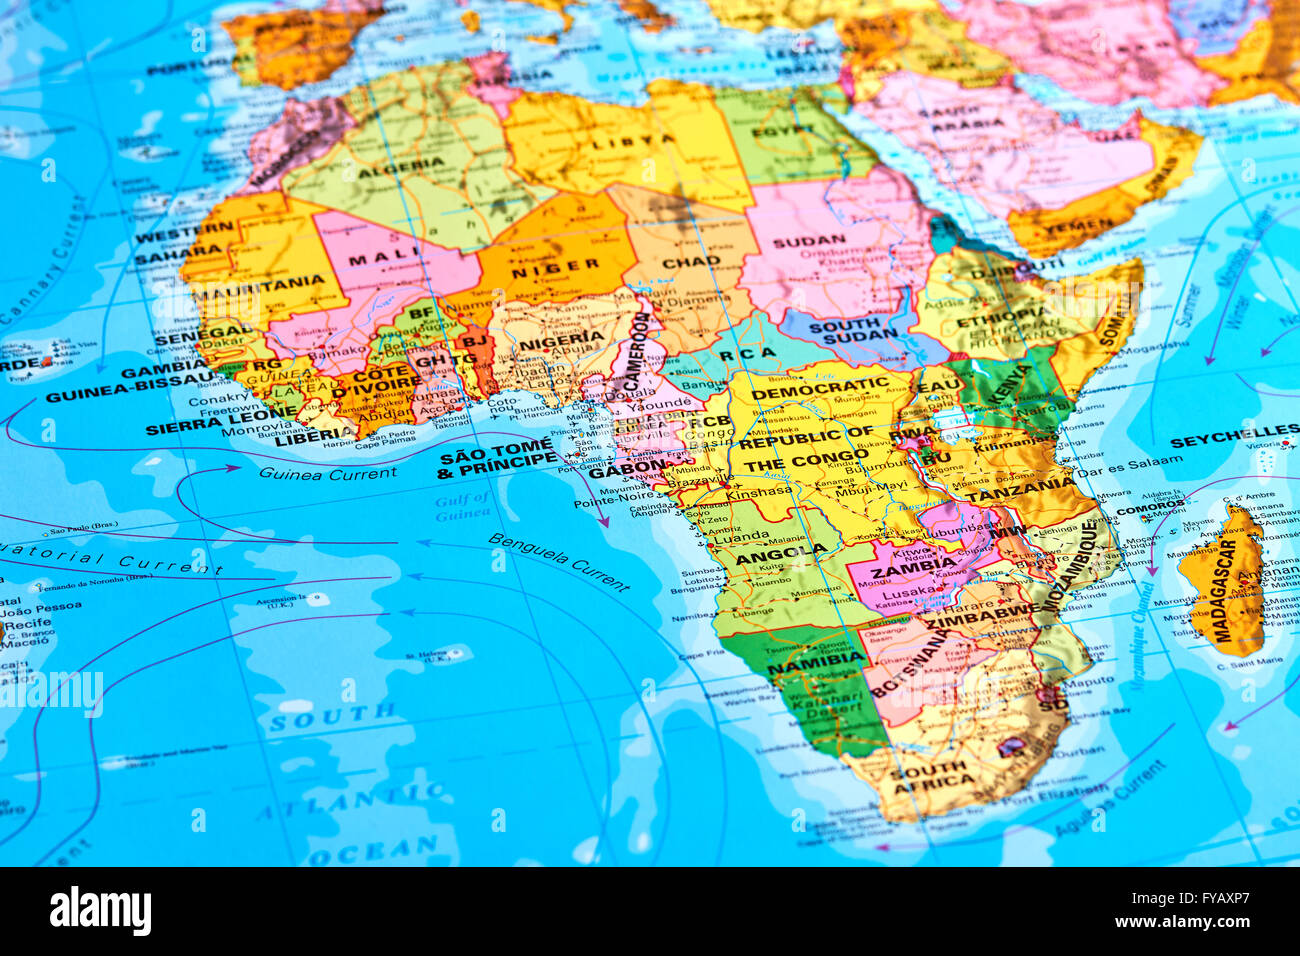 Africa oldest continent on the world map stock photo 102888079 alamy africa oldest continent on the world map gumiabroncs Images